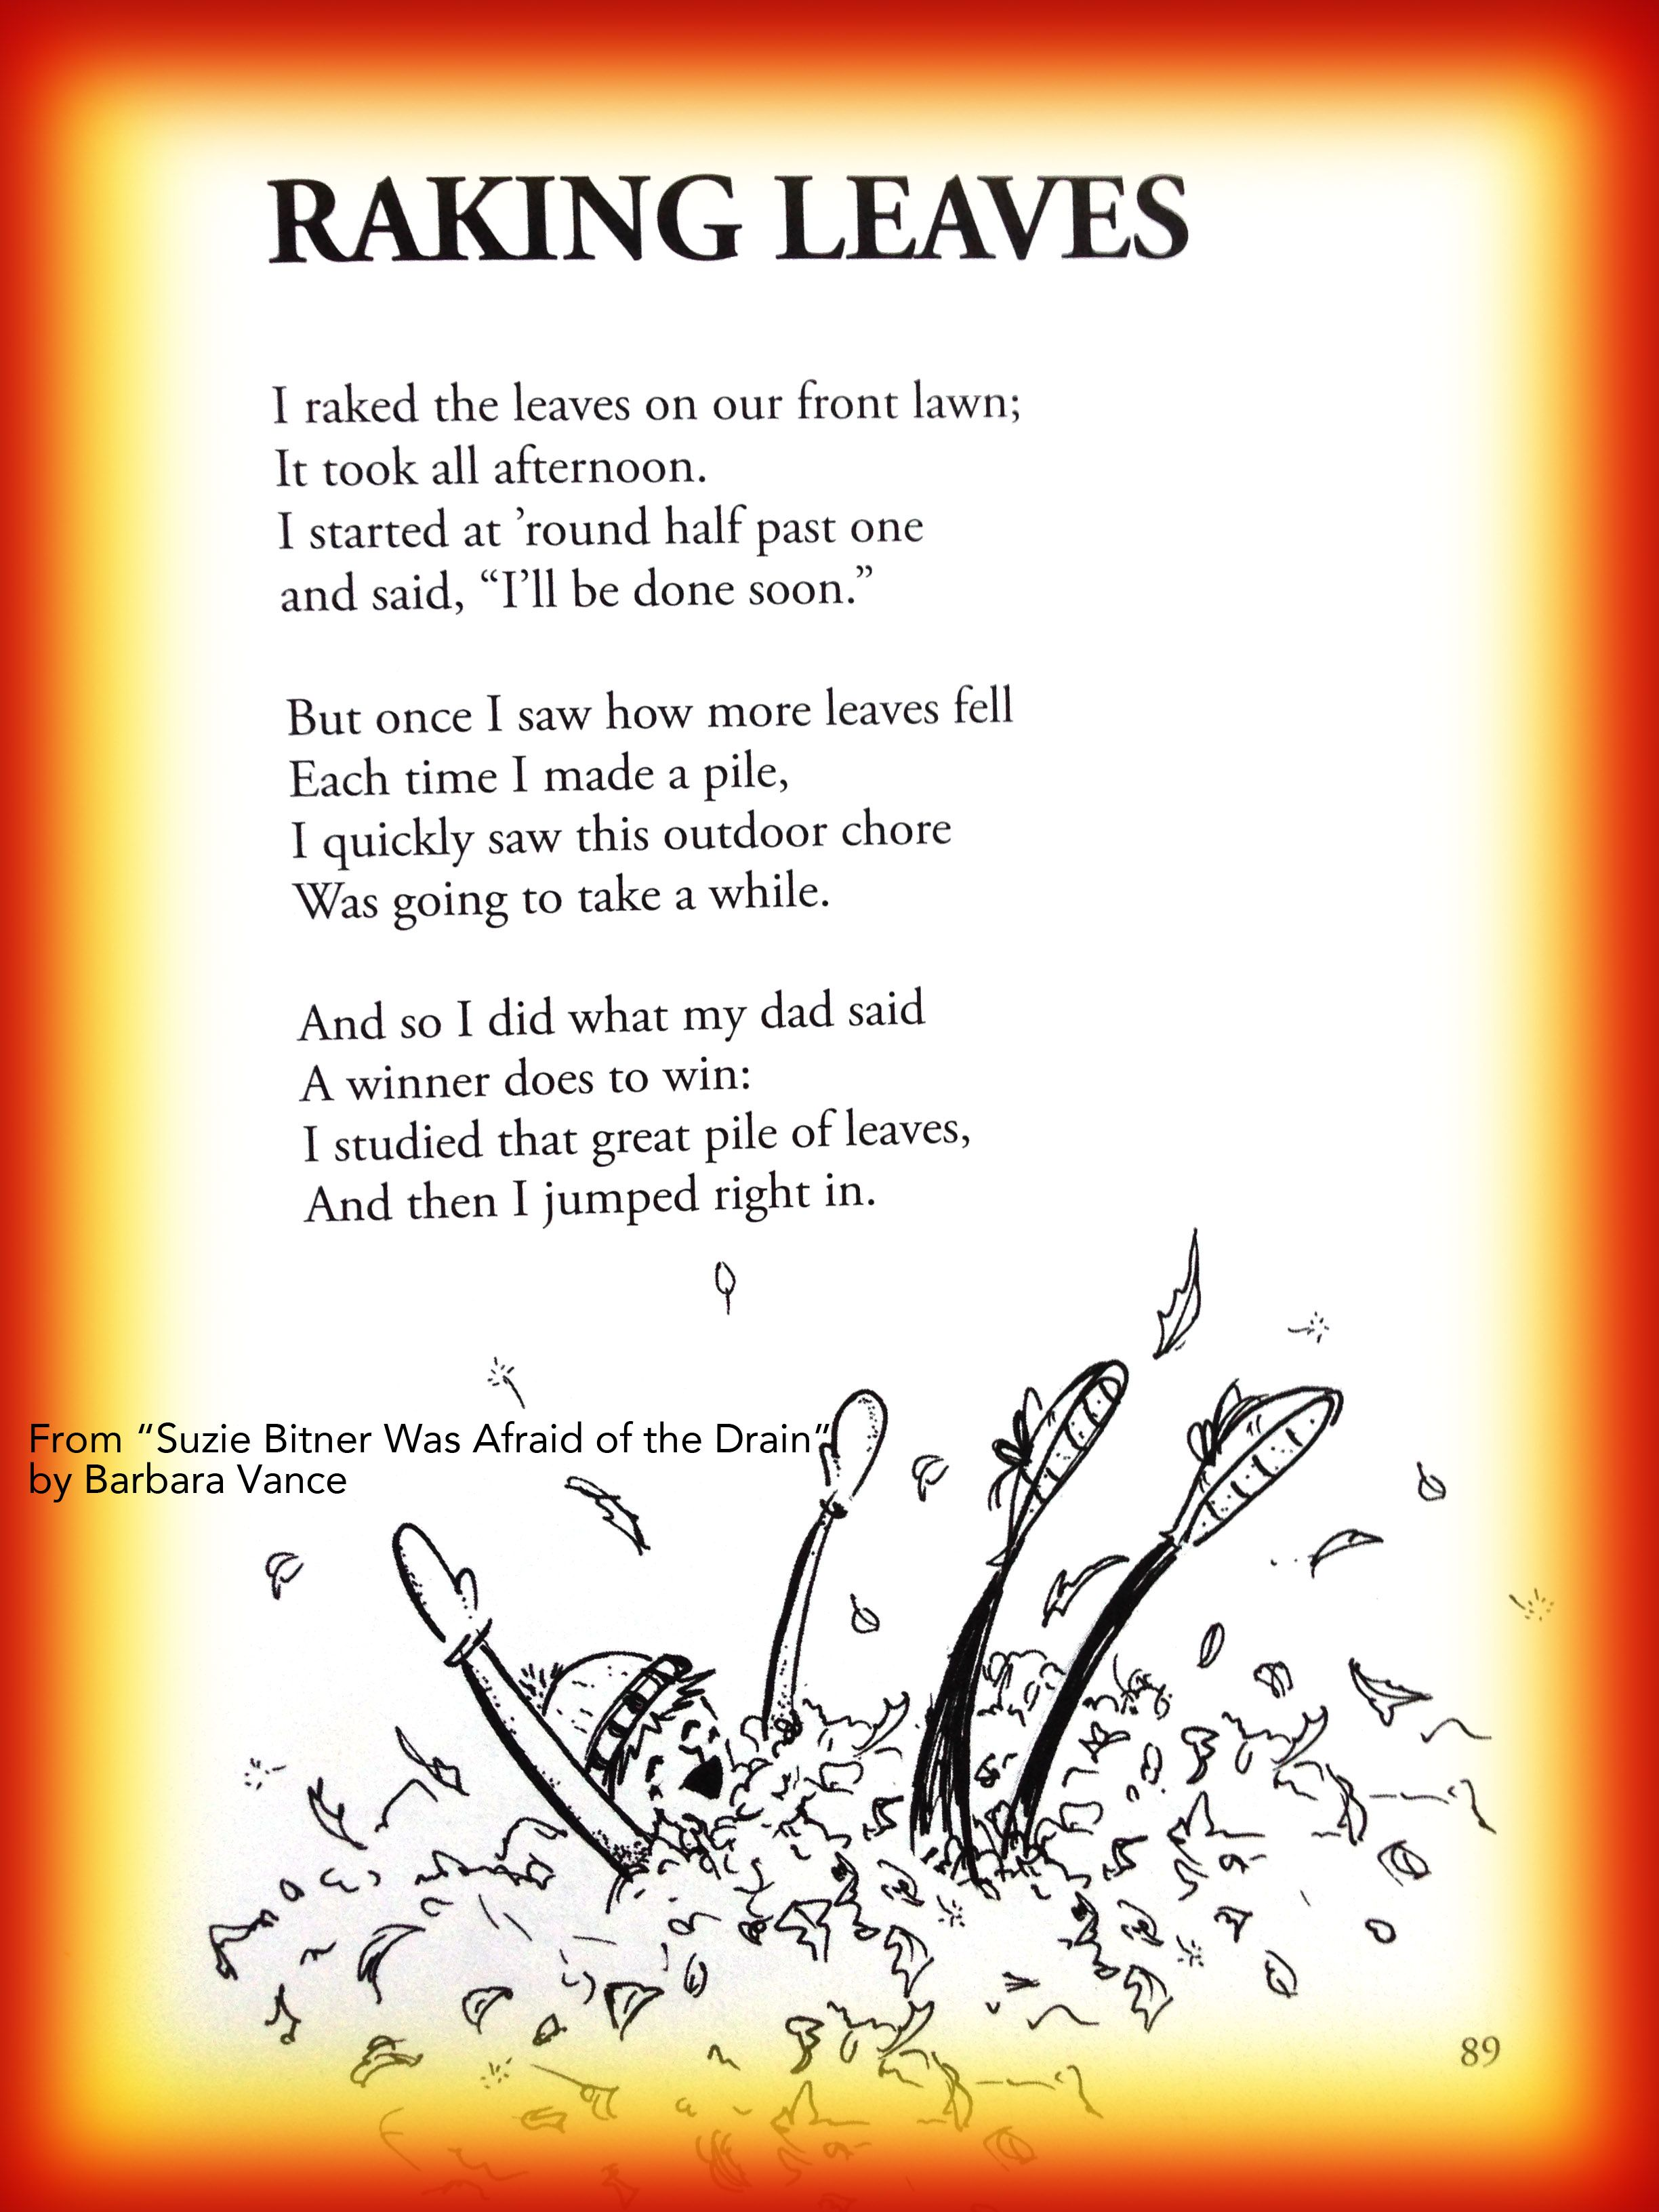 Fall Children S Poem About Raking Leaves In Autumn Great